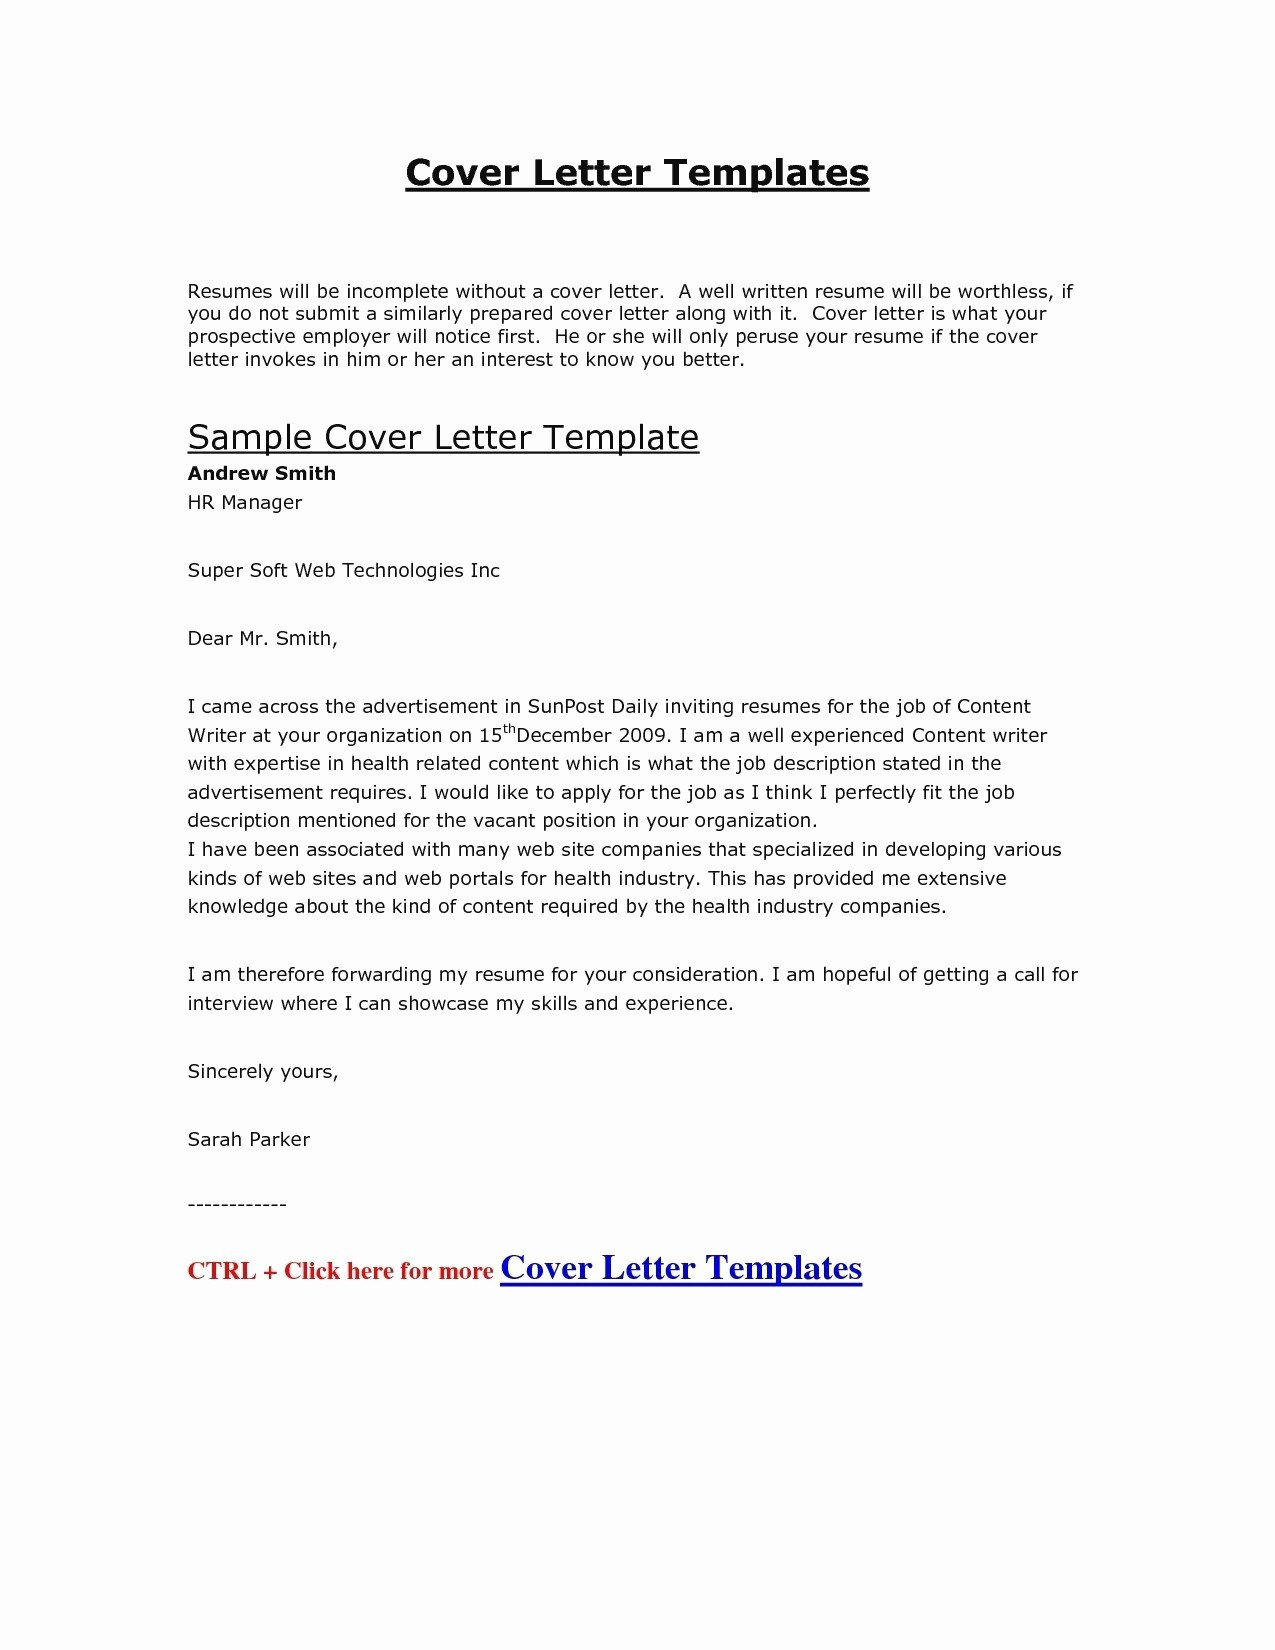 legal letter format template job application letter format template copy cover letter template hr